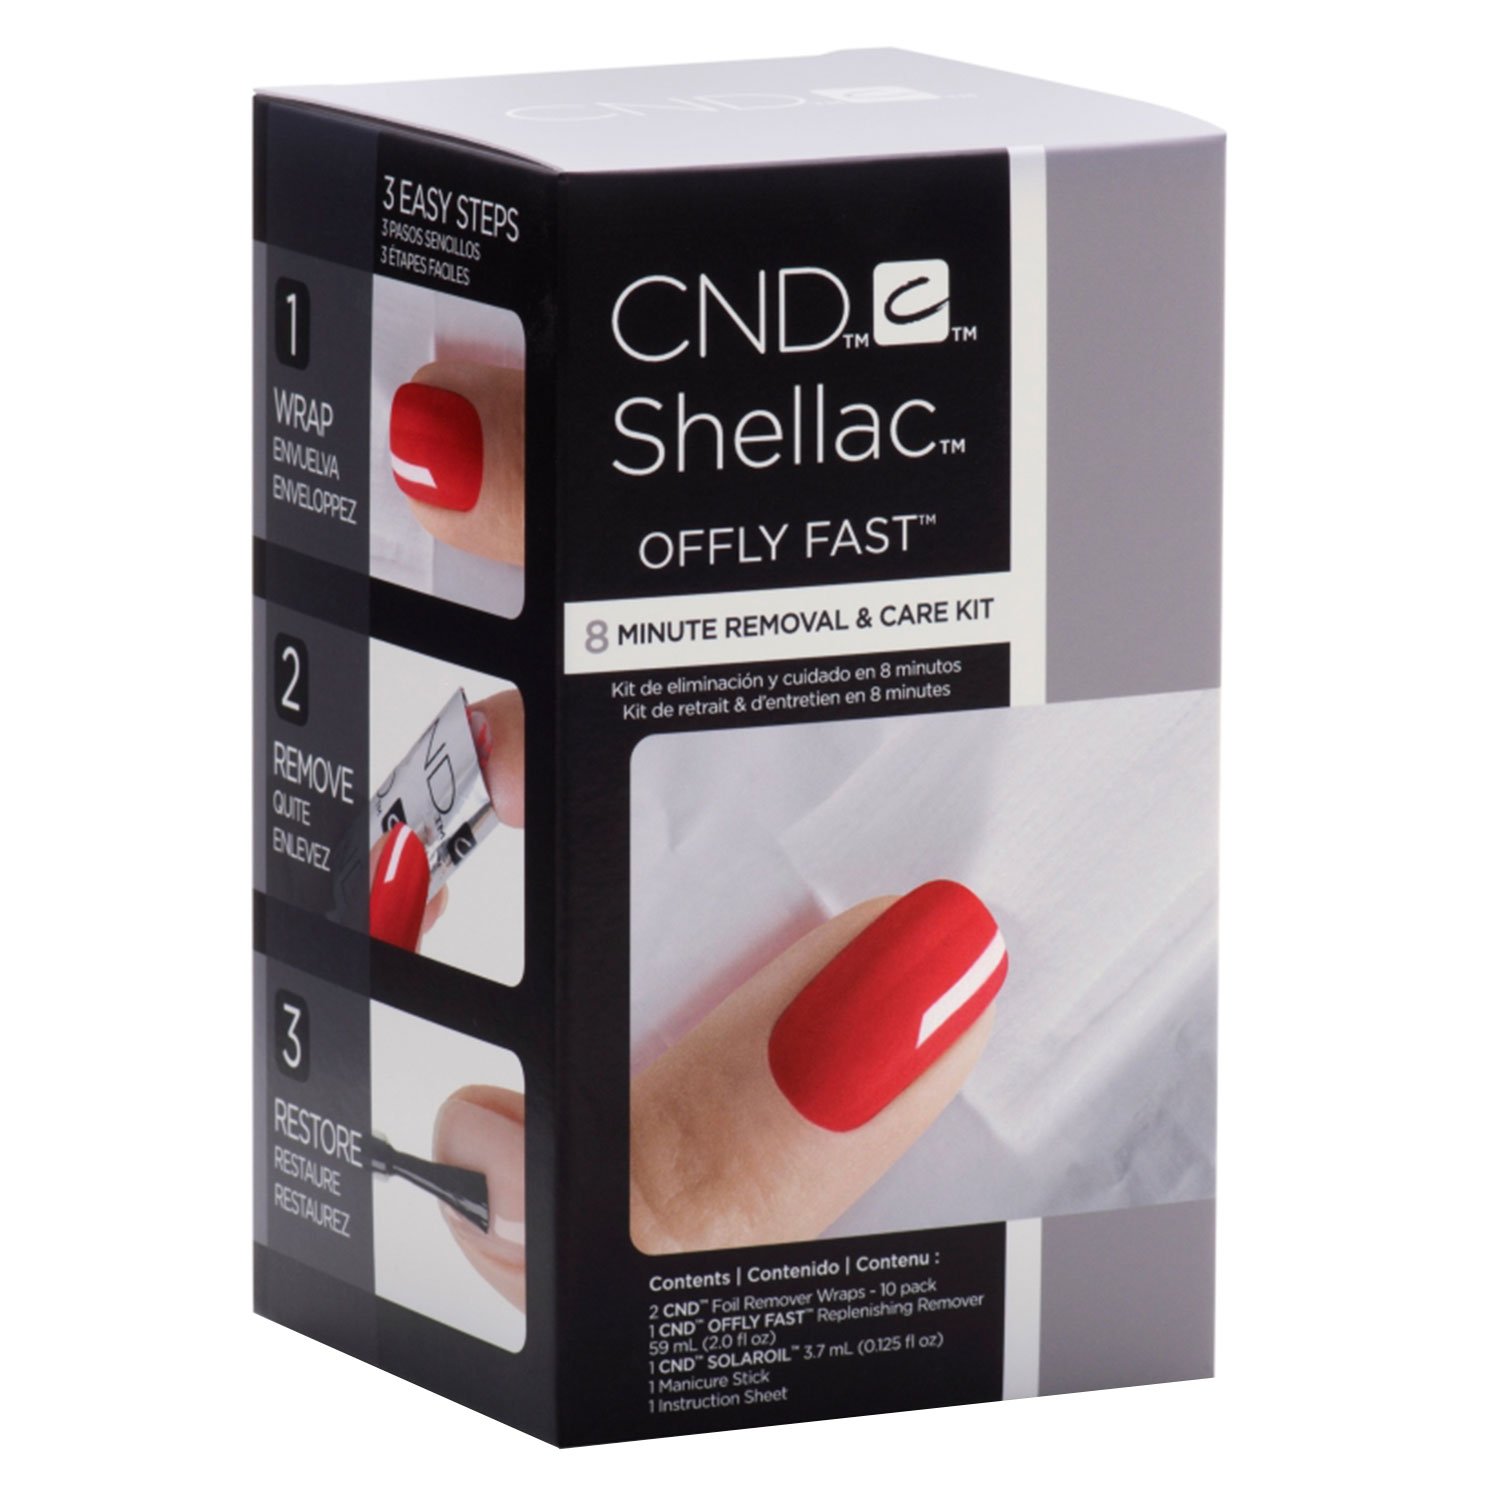 Shellac - Offly Fast 8 Minute Removal & Care Kit